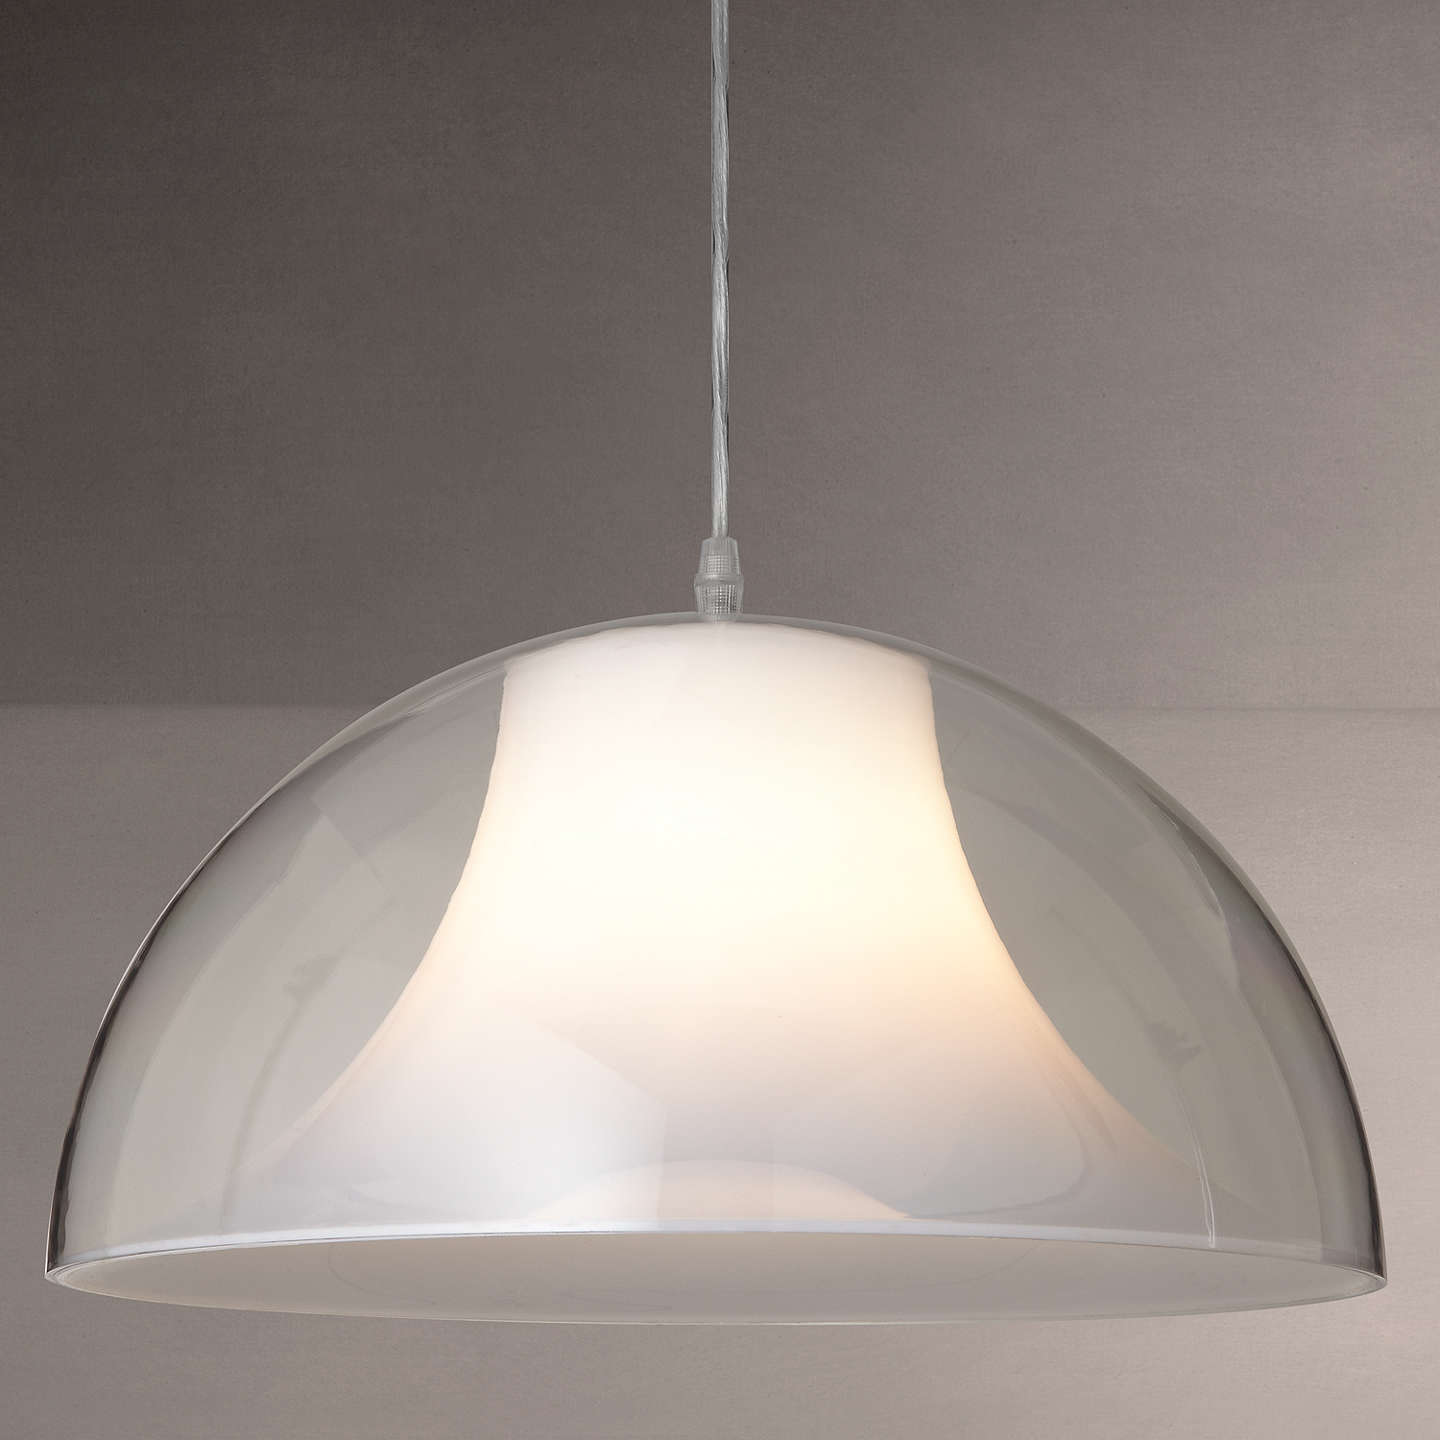 horsfallwright lamp original dome wright seagrass horsfall light by natural product weave pendant large resubmitted